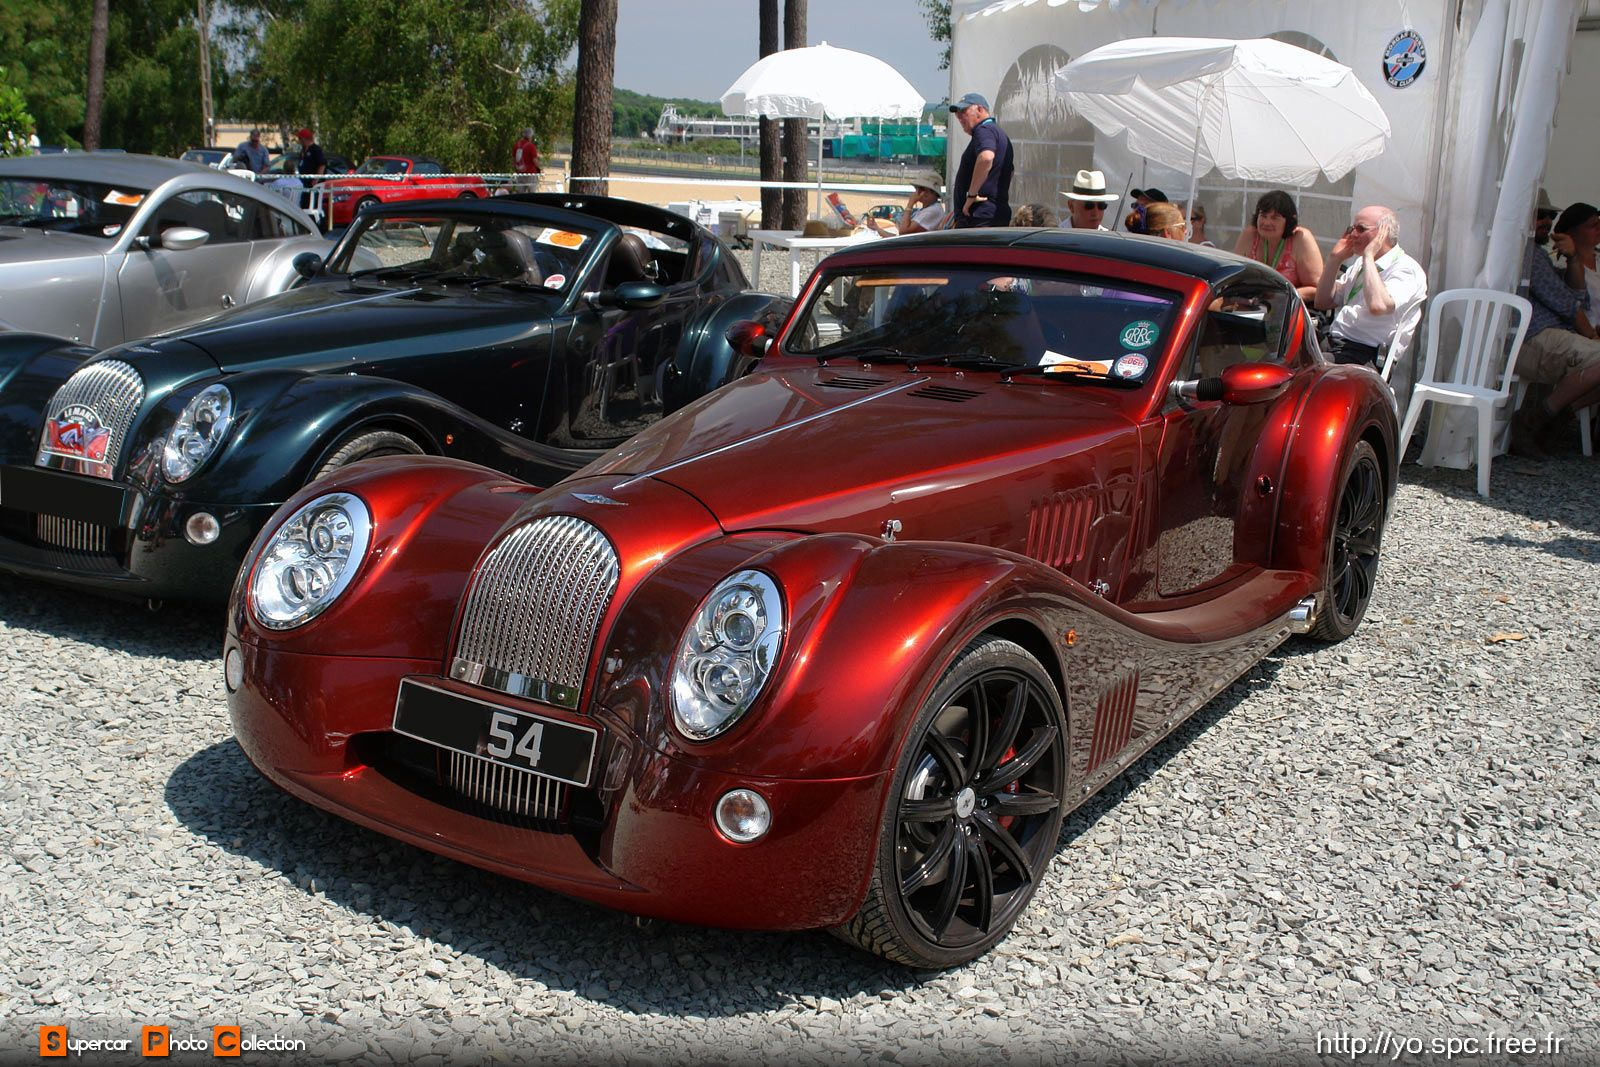 absolute perfection, the Morgan Aerospot, blend of the old, classic and new.